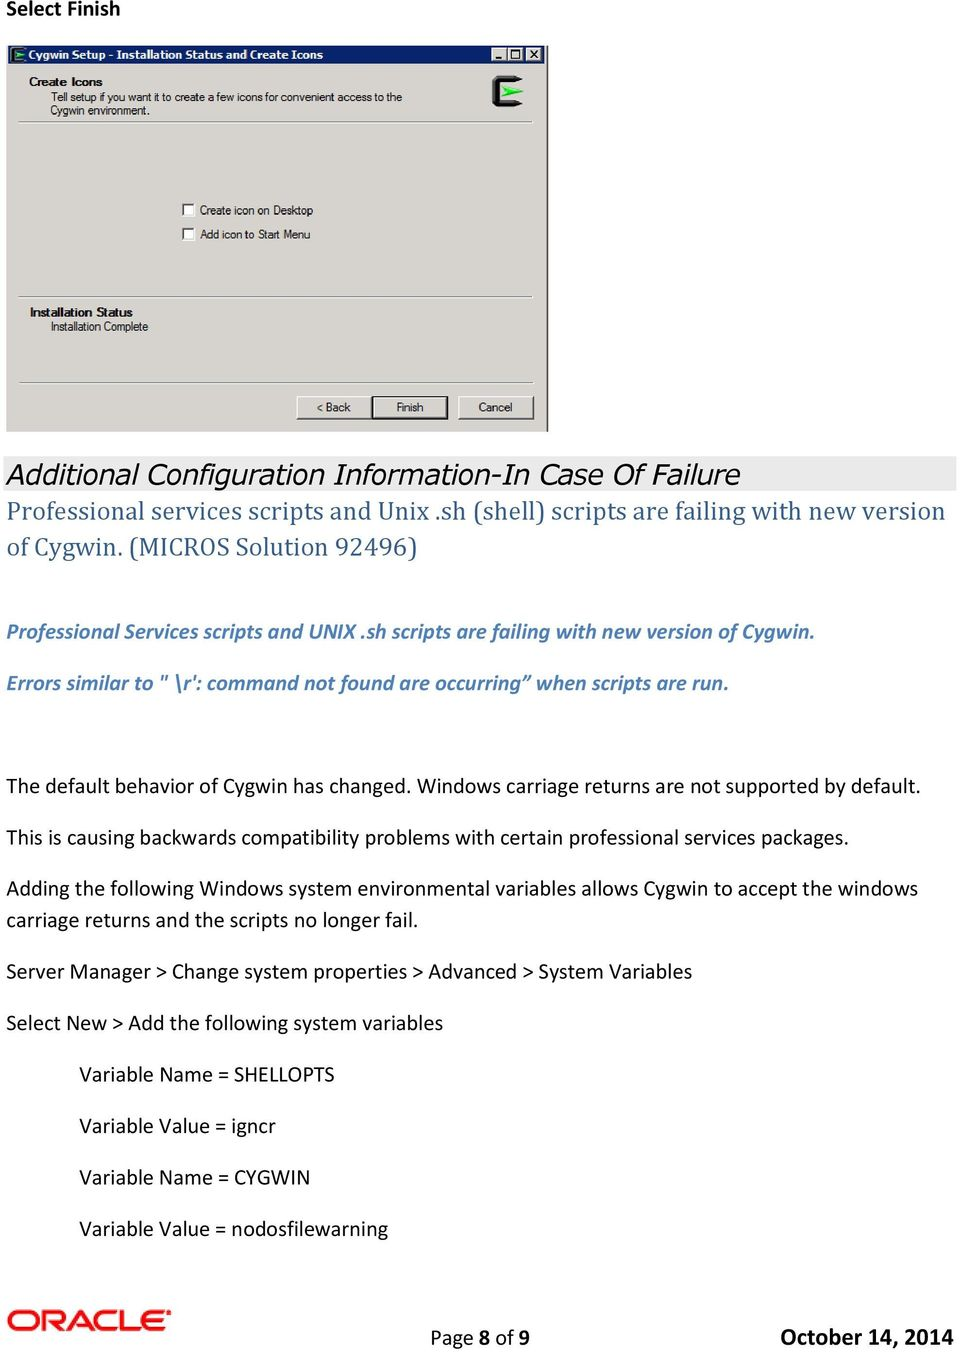 Versions which contain Cygwin and Bash as part of the